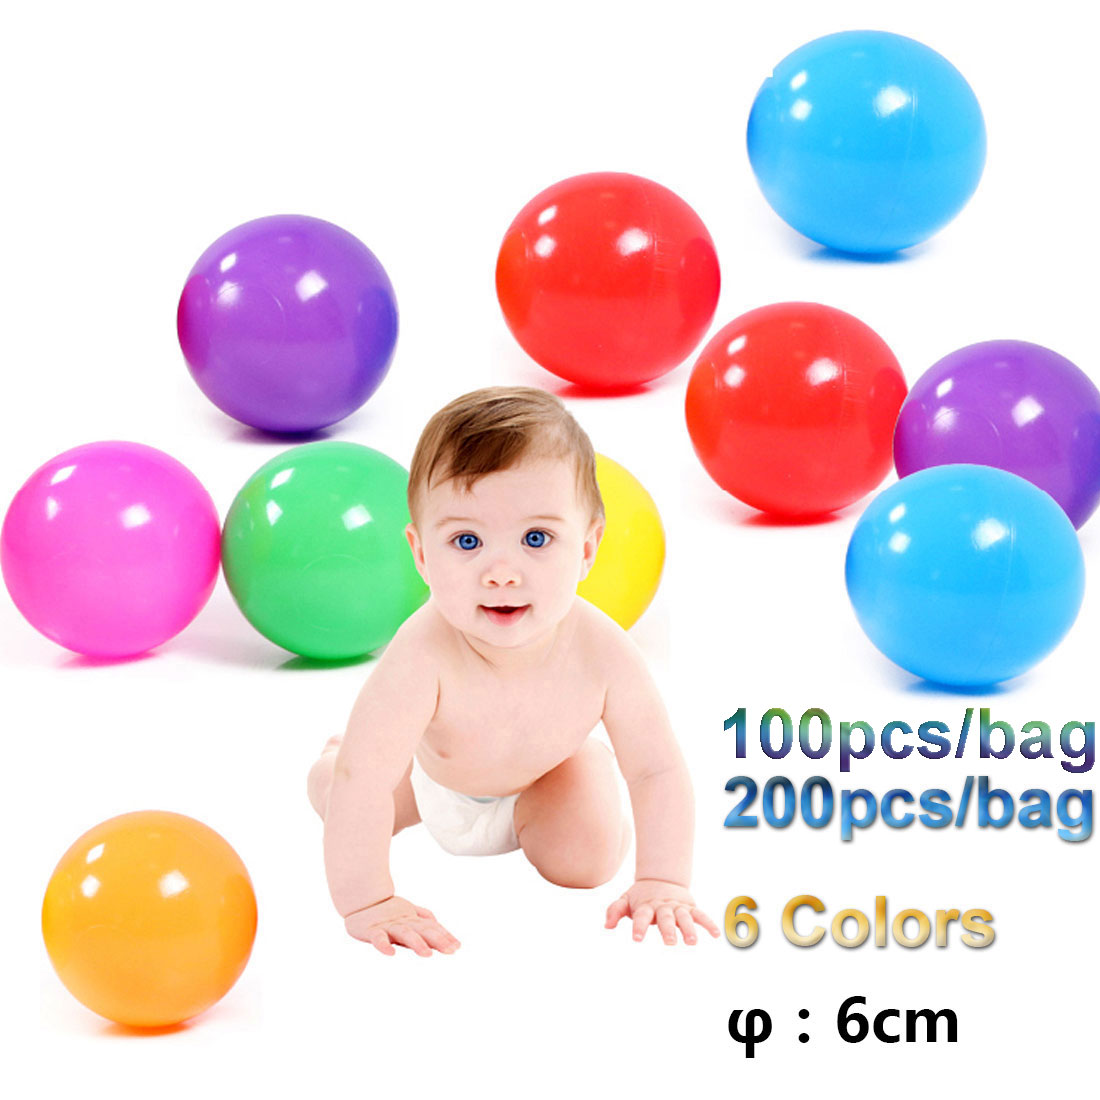 Quality In 100pcs/200pcs/bag Eco-friendly 6 Bright Colors Soft Plastic Water Pool Ocean Wave Ball In Mesh Bag With Zipper Baby Funny Superior